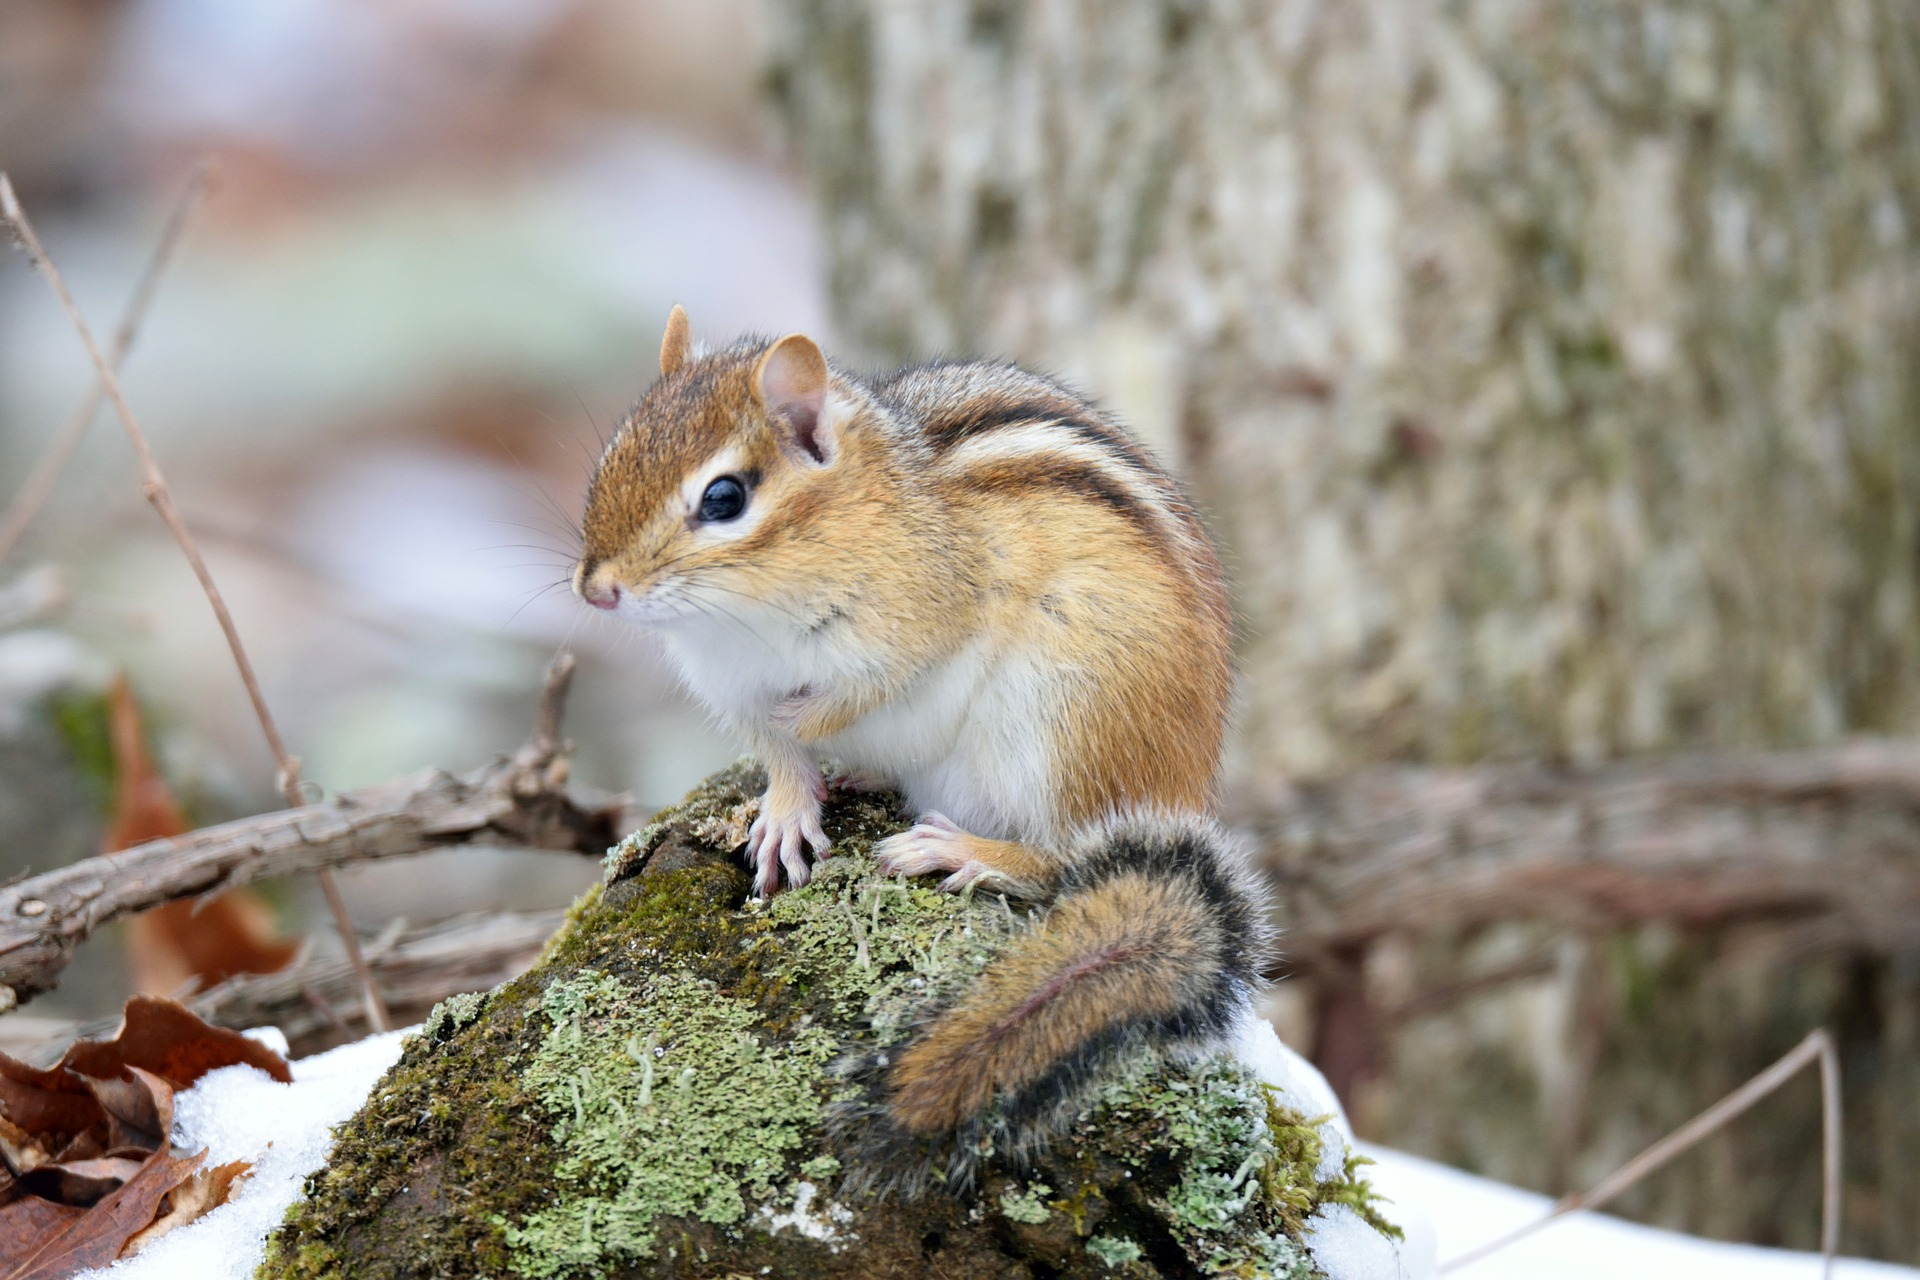 Image of chipmunk in forest